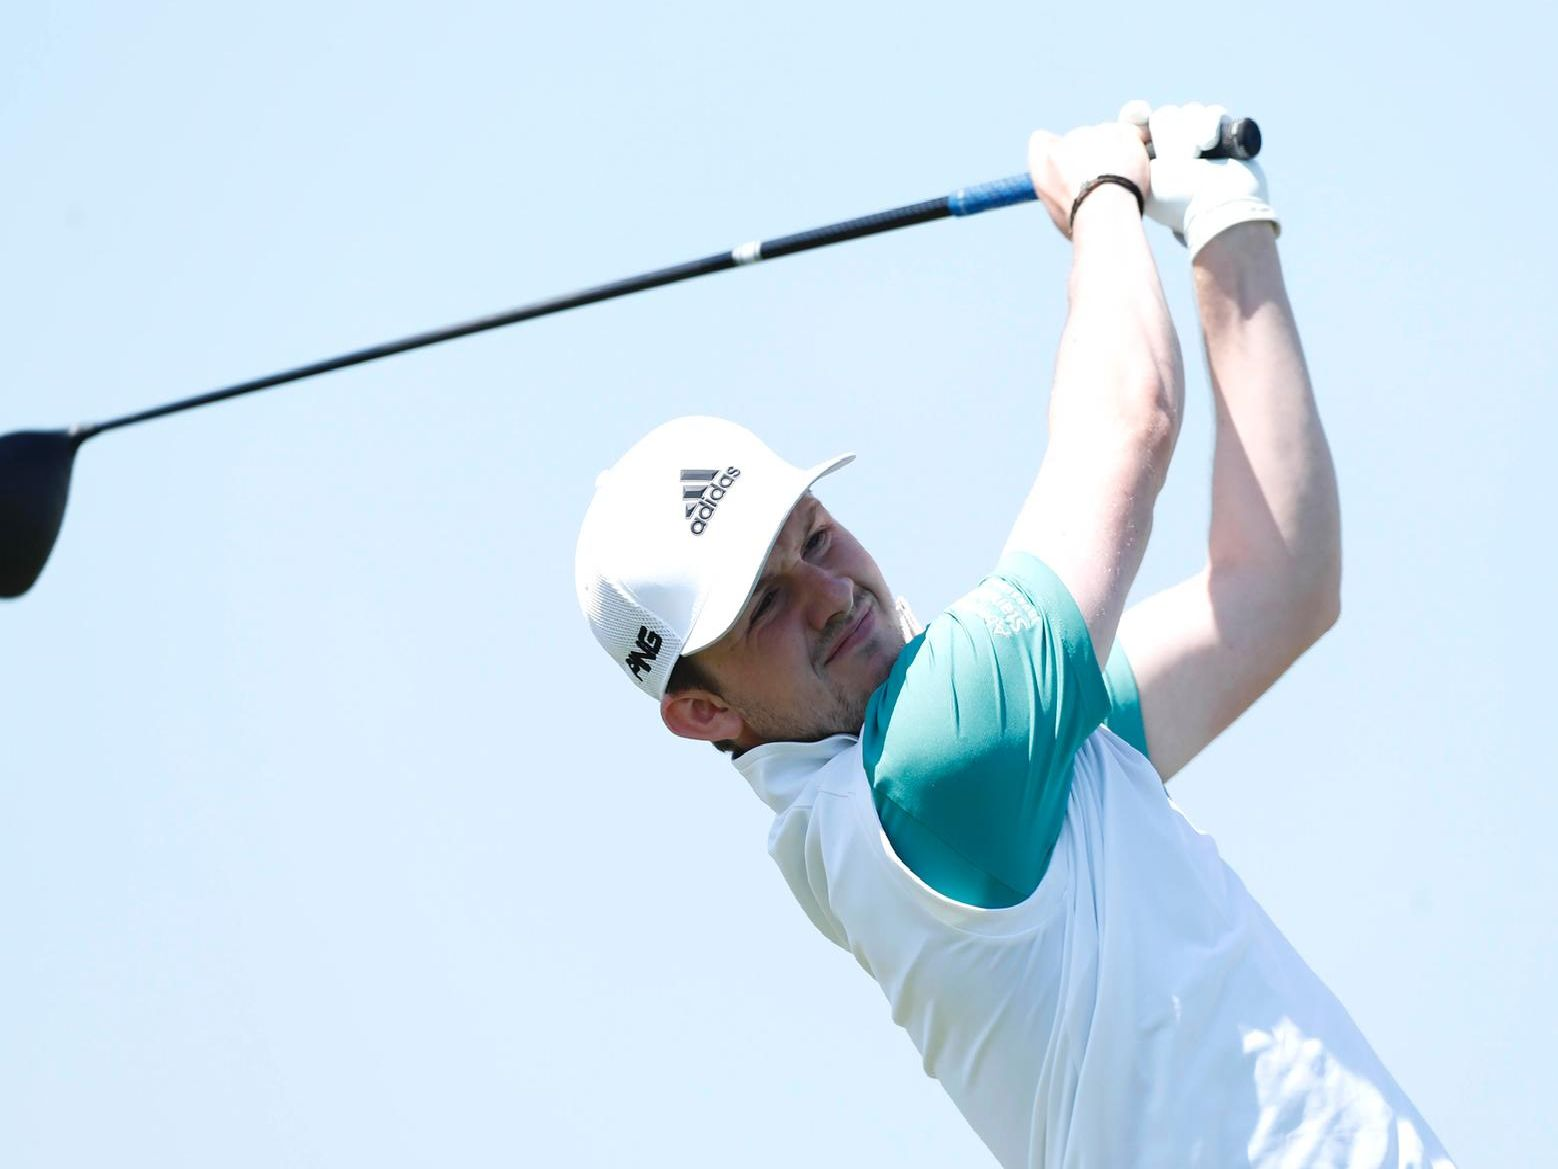 Connor Syme  tees off on the 10th hole during the first round of the Turkish Airlines Challenge at Samsun Golf Club.'Pic by Luke Walker/Getty Images